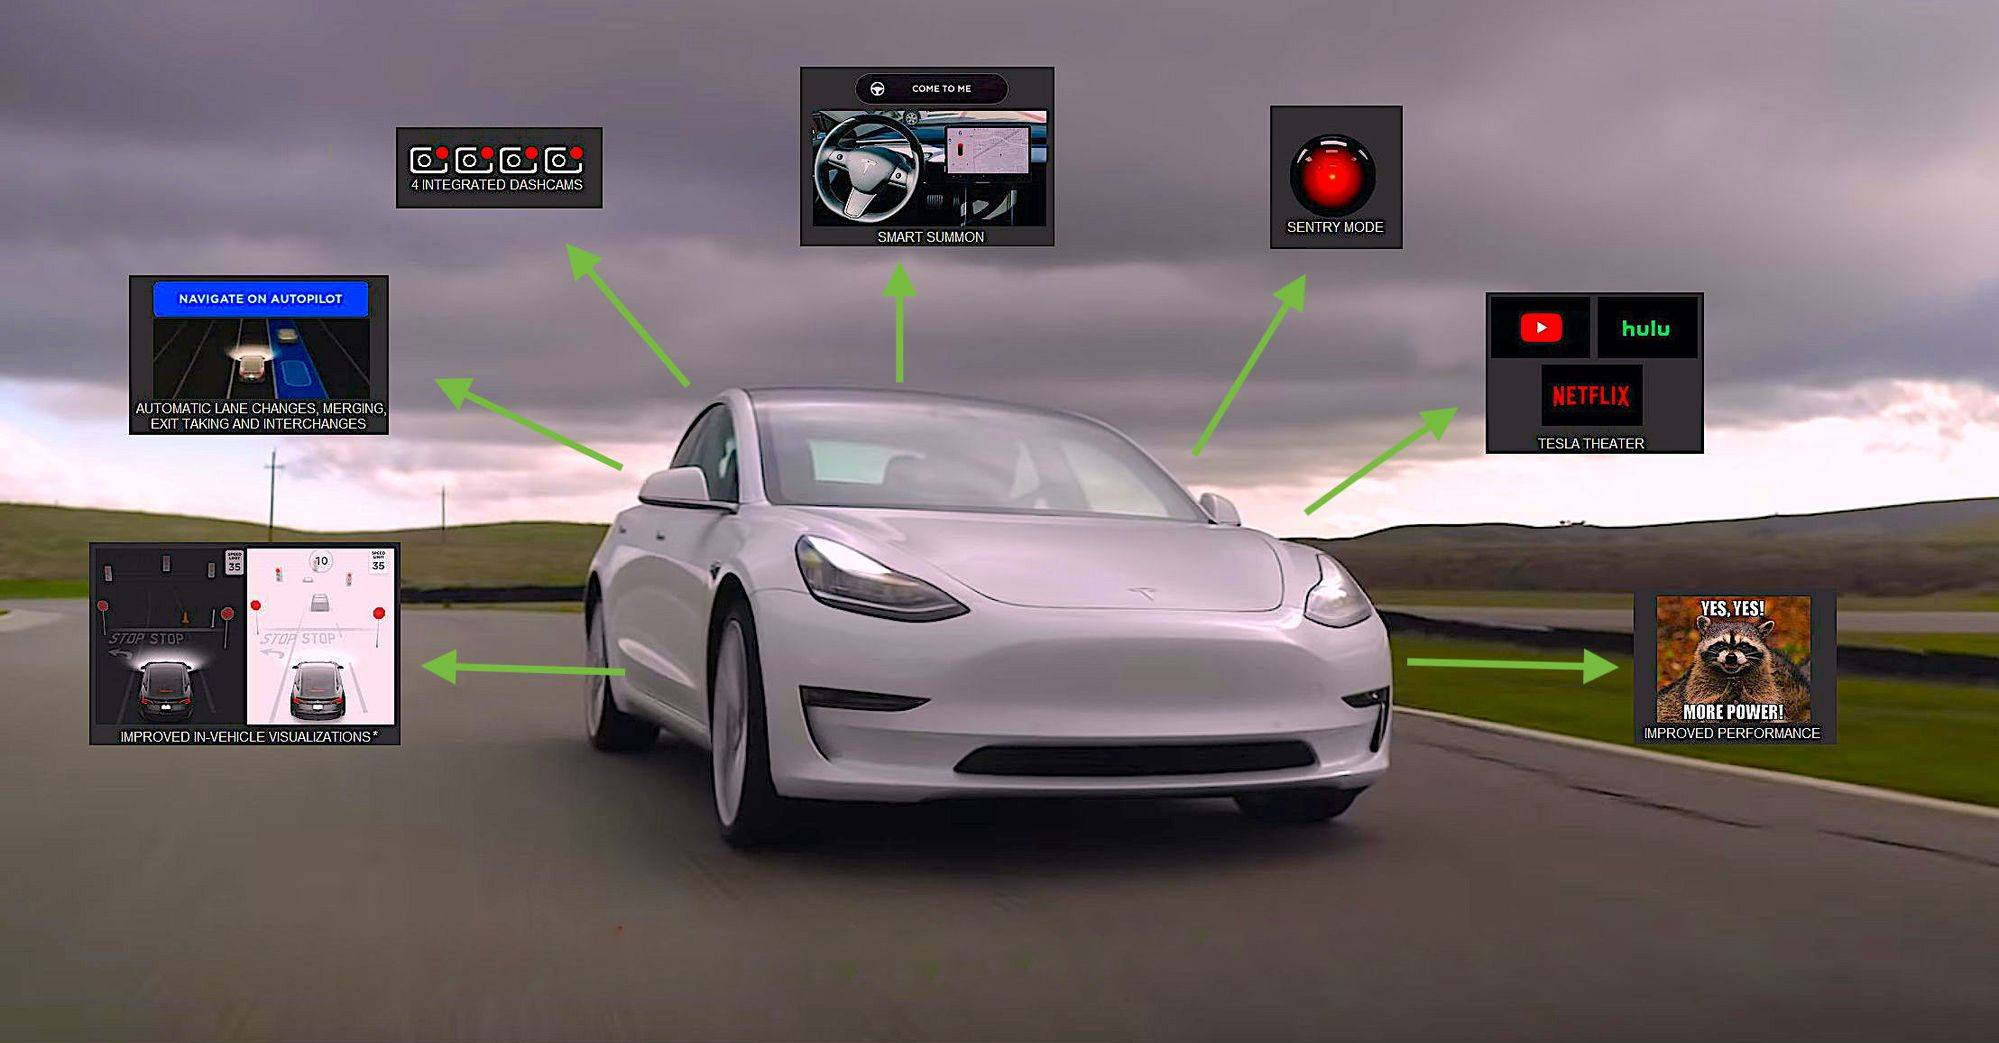 Tesla Cars Have Free System-Wide OTA Updates, While Ford Charges $149 for a USB Map Refresh